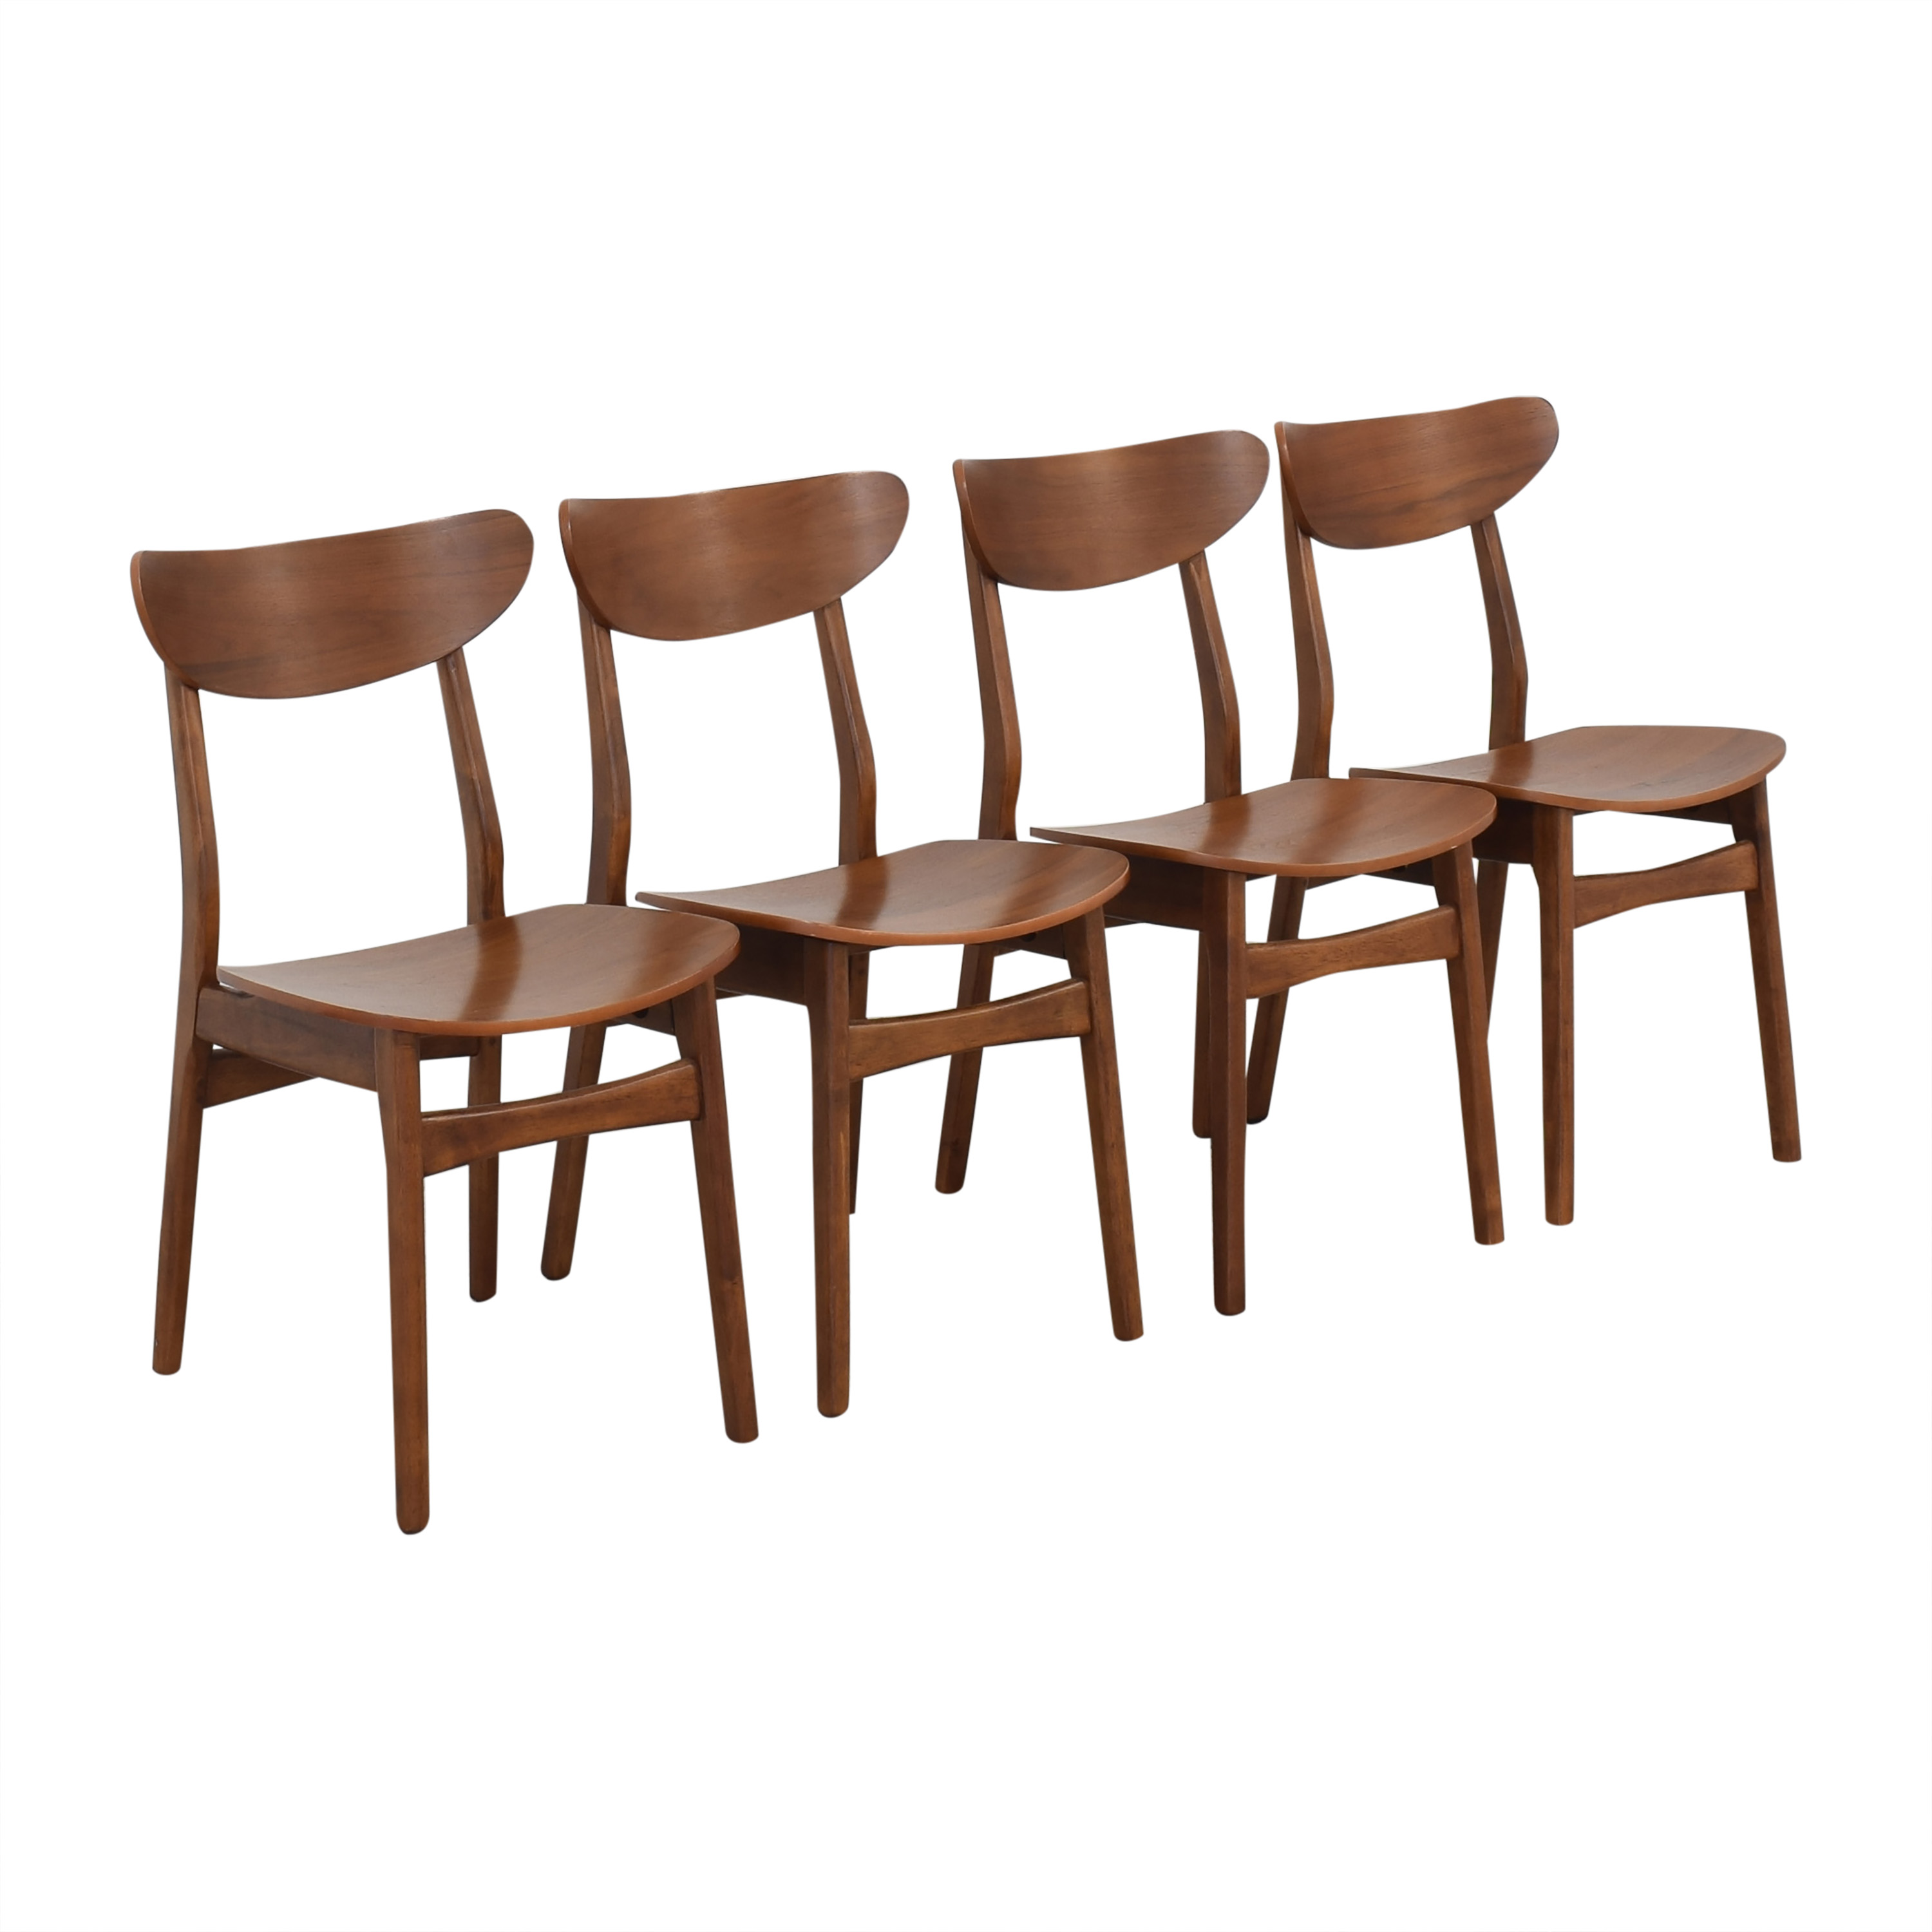 West Elm West Elm Classic Cafe Dining Chairs discount